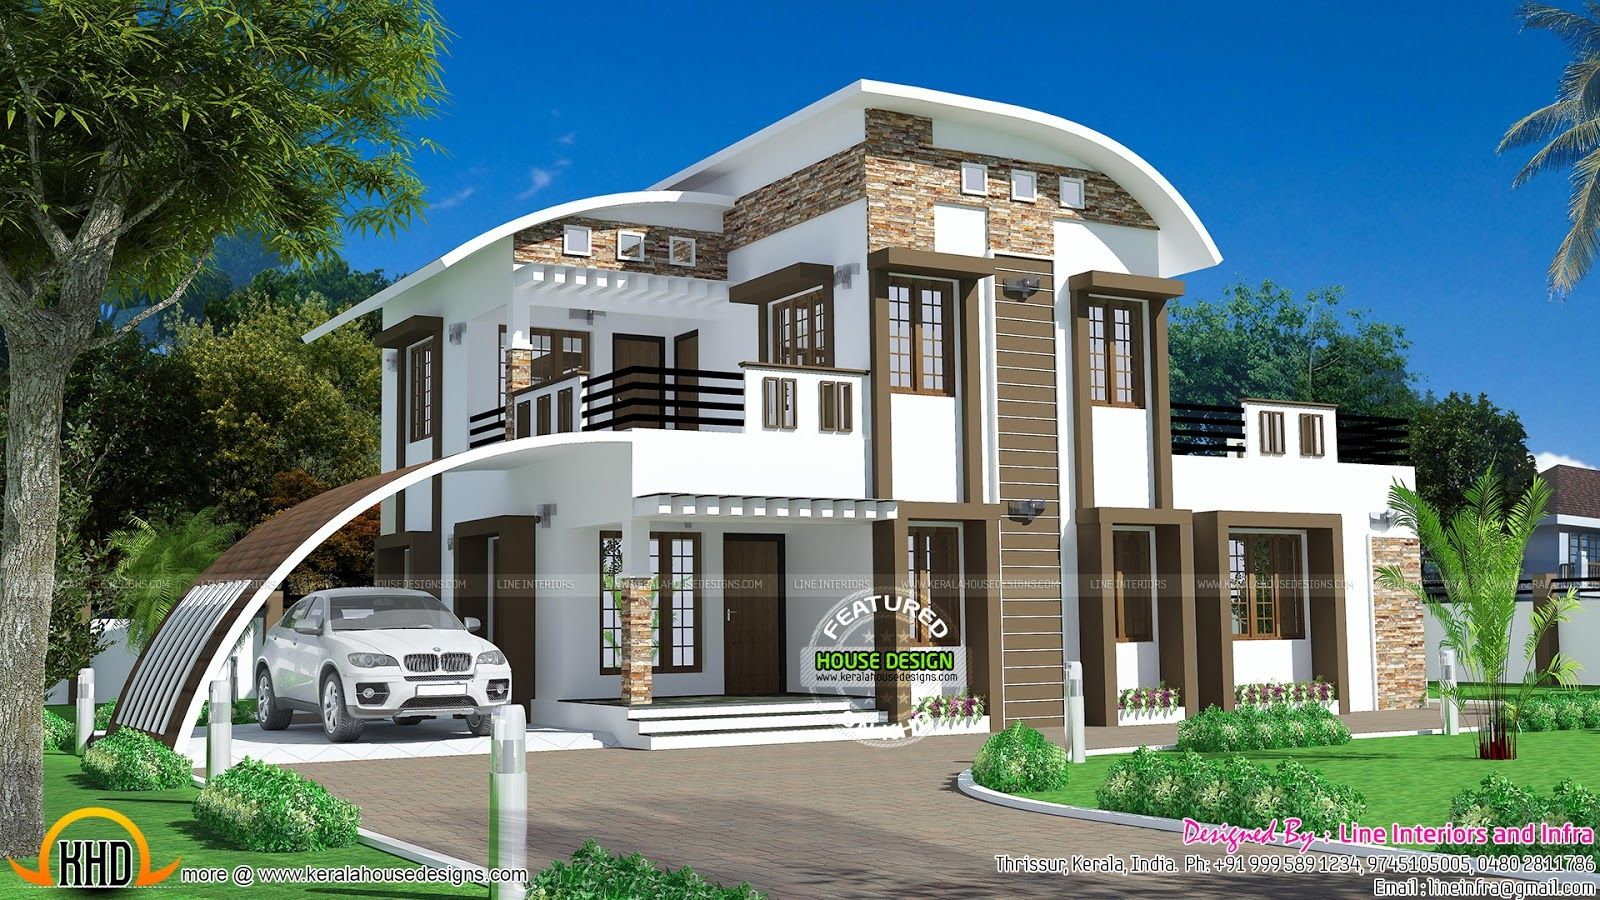 Round roof house designs house of samples modern round houses inside round house plans impressive round houses designs